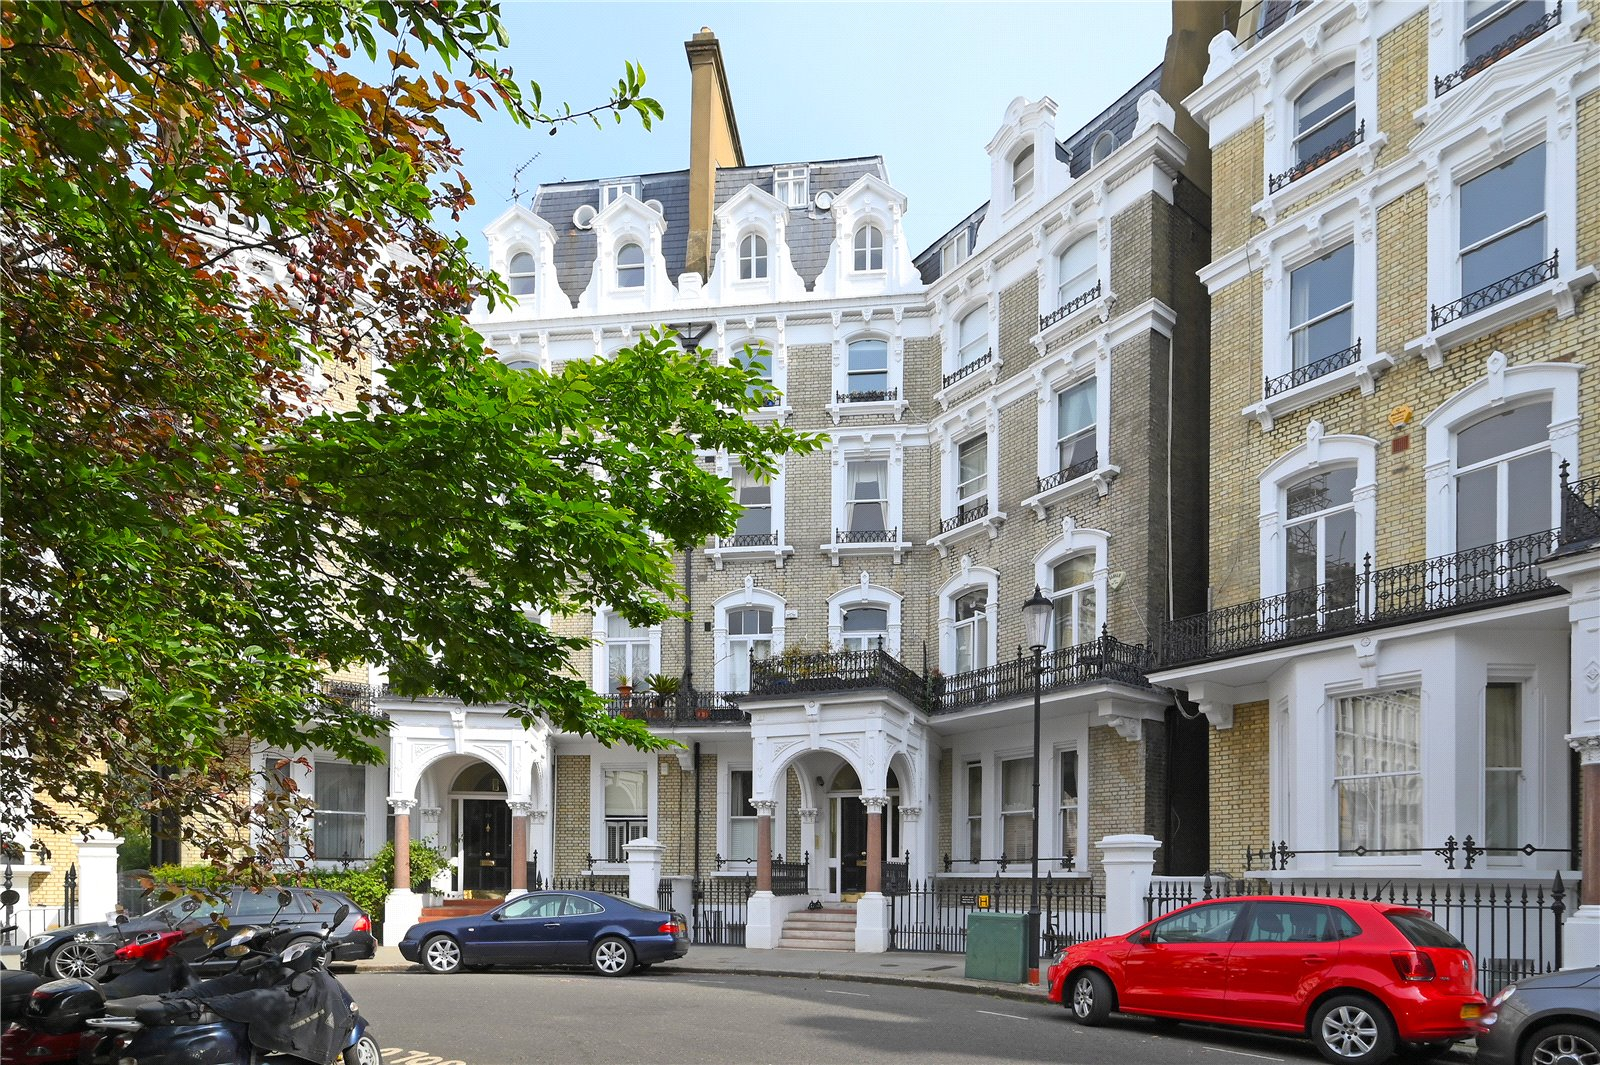 Redcliffe Square, London